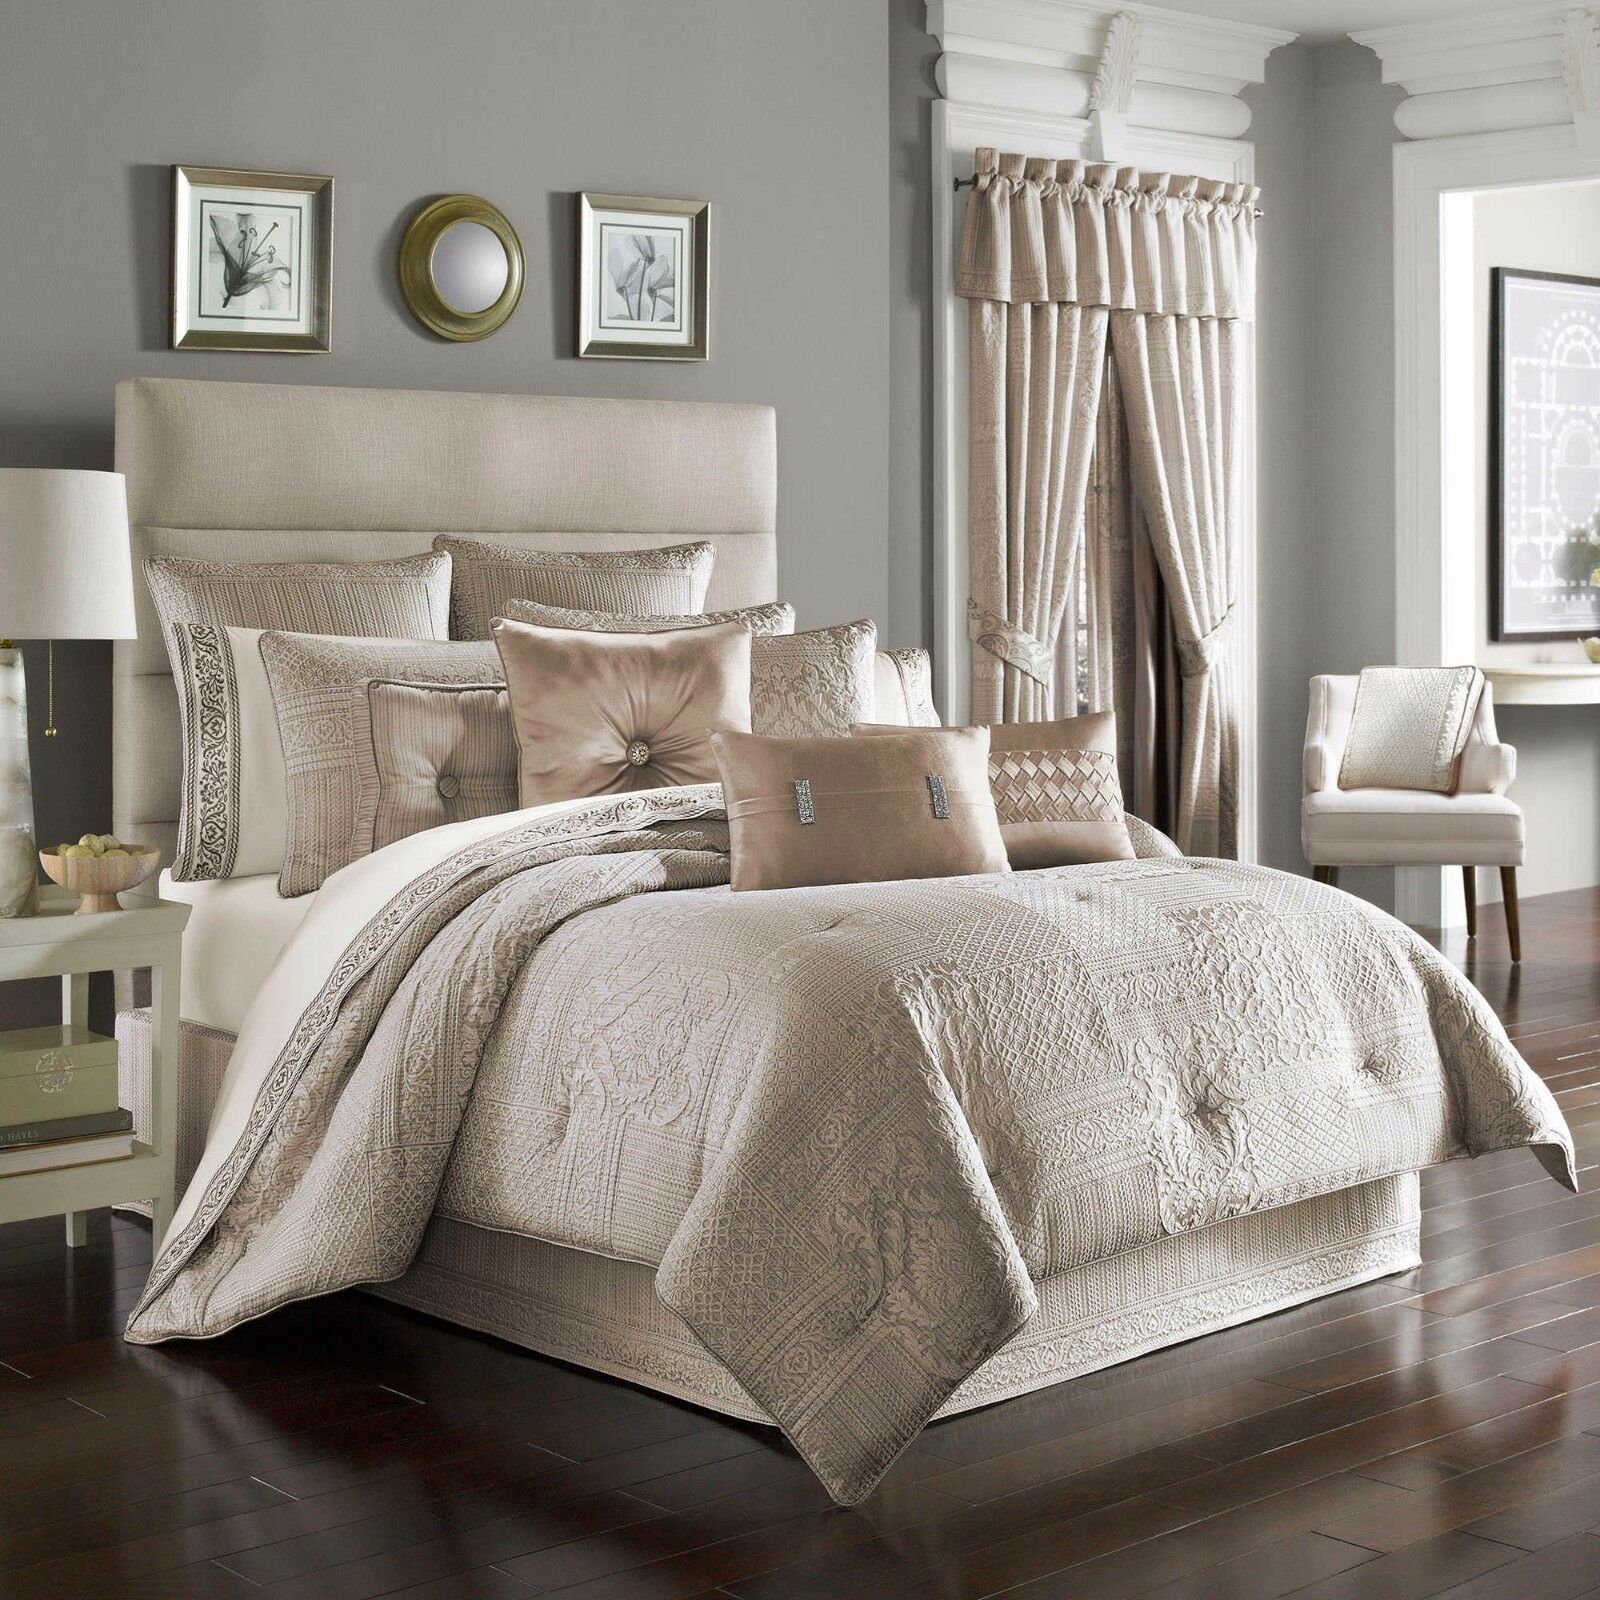 New J. Queen New York Wilmington Alabaster 4 Piece Queen Comforter Set